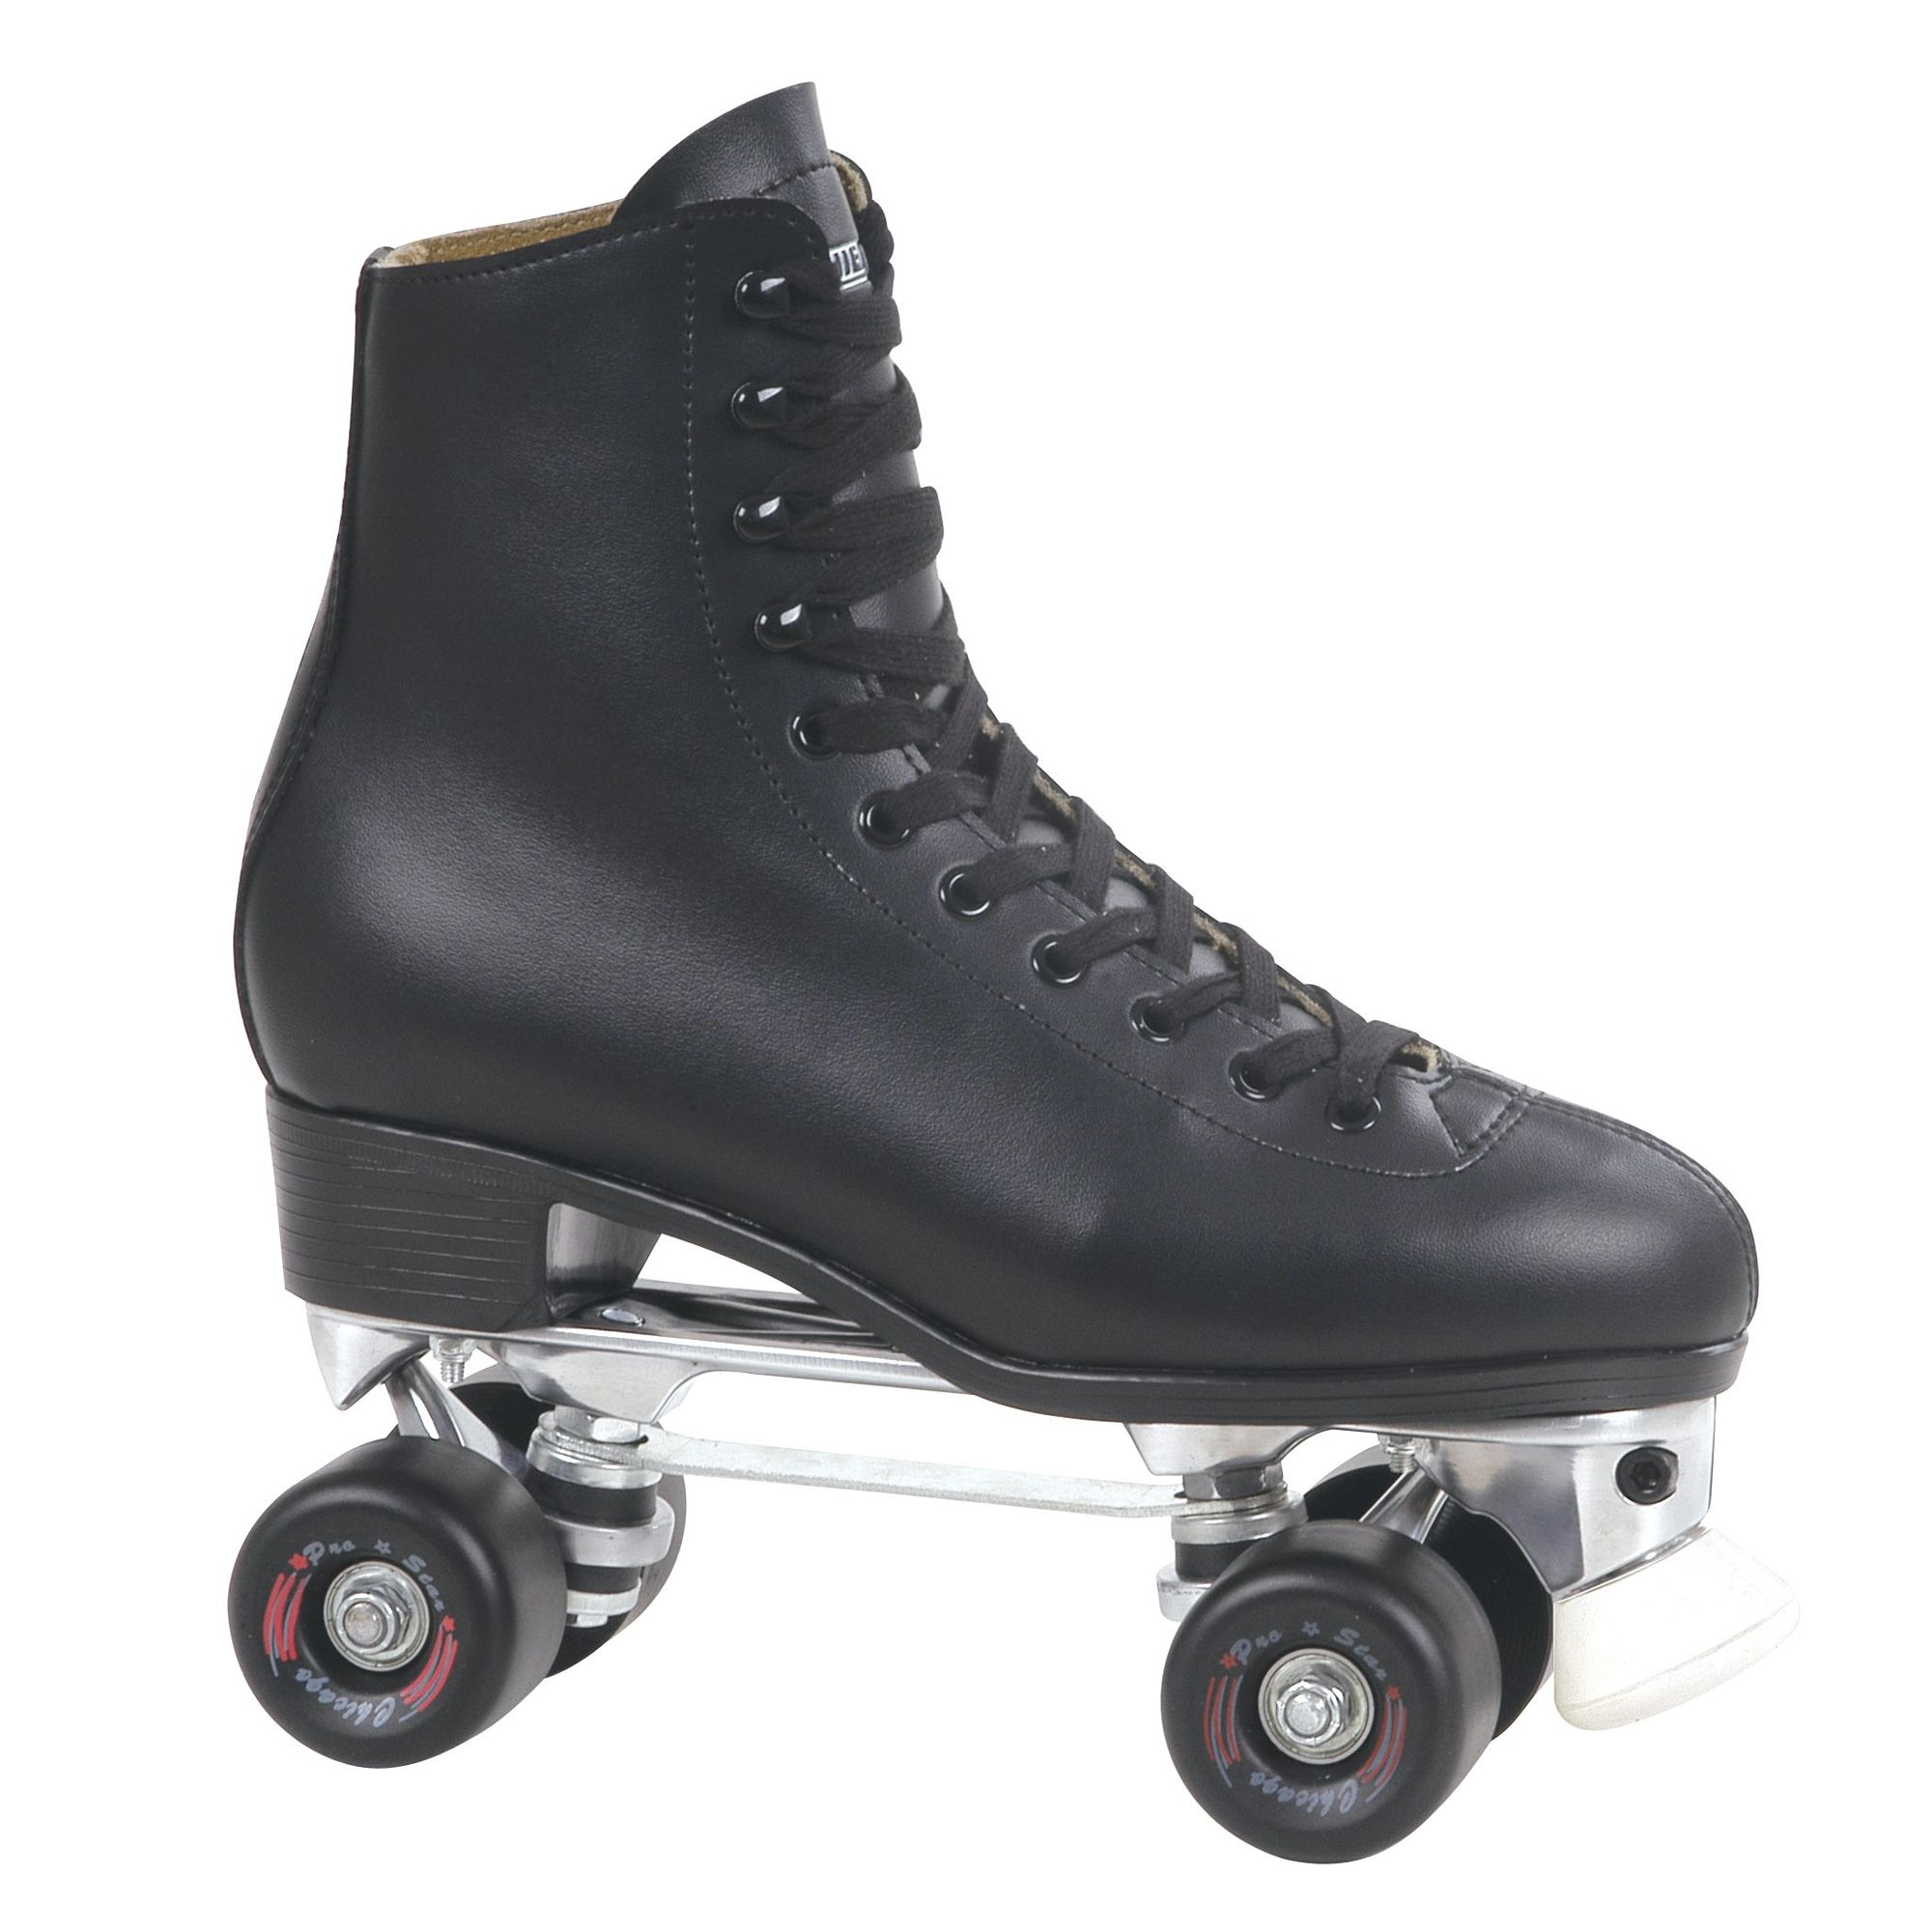 Men's Leather Lined Rink Skate Black